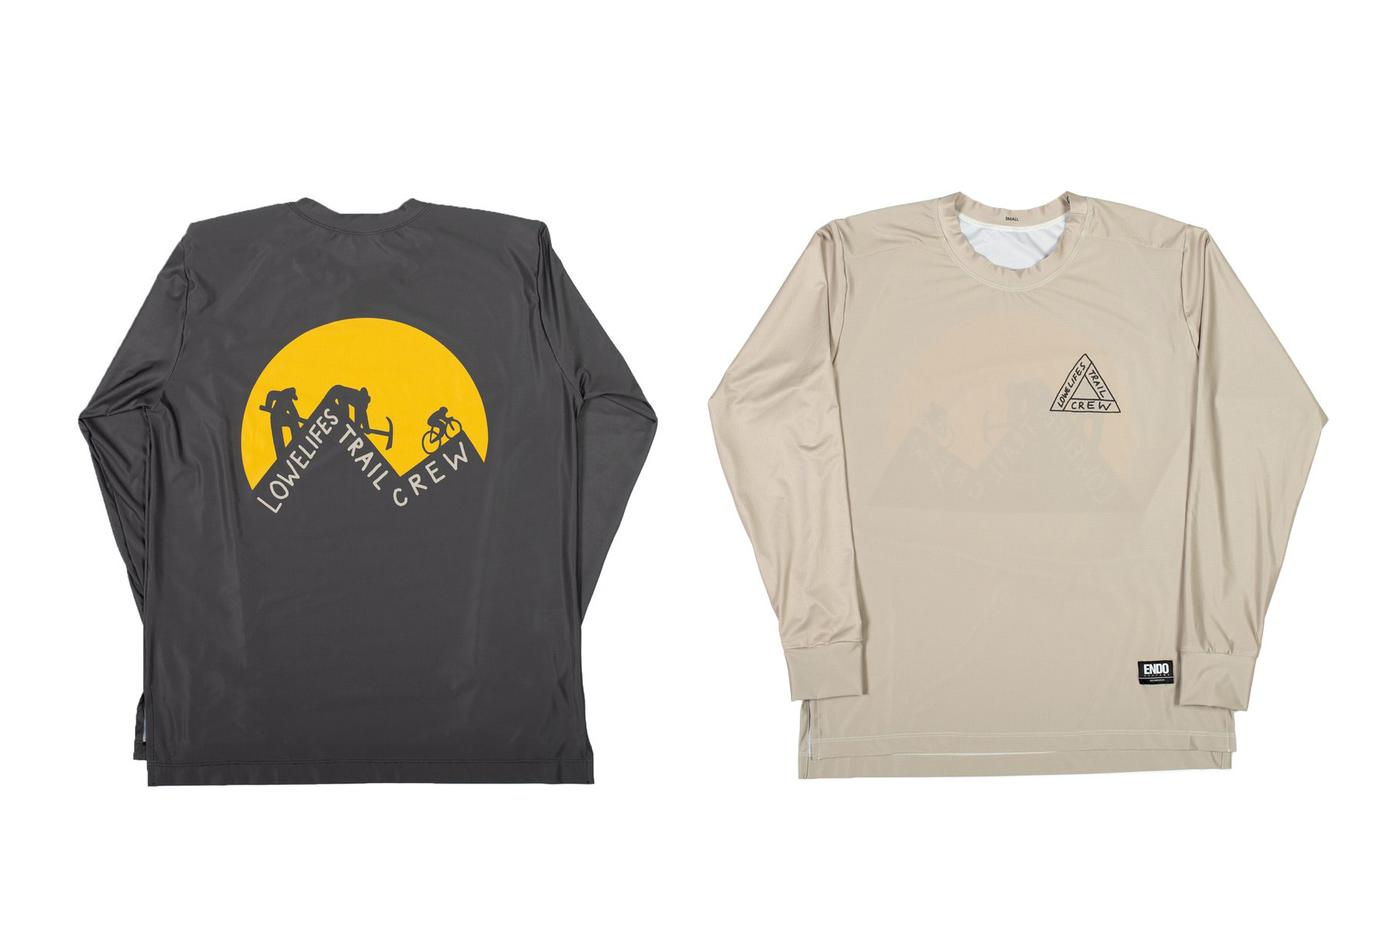 Lowelifes Respectable Citizens' Club: Trail Work Tech Tees